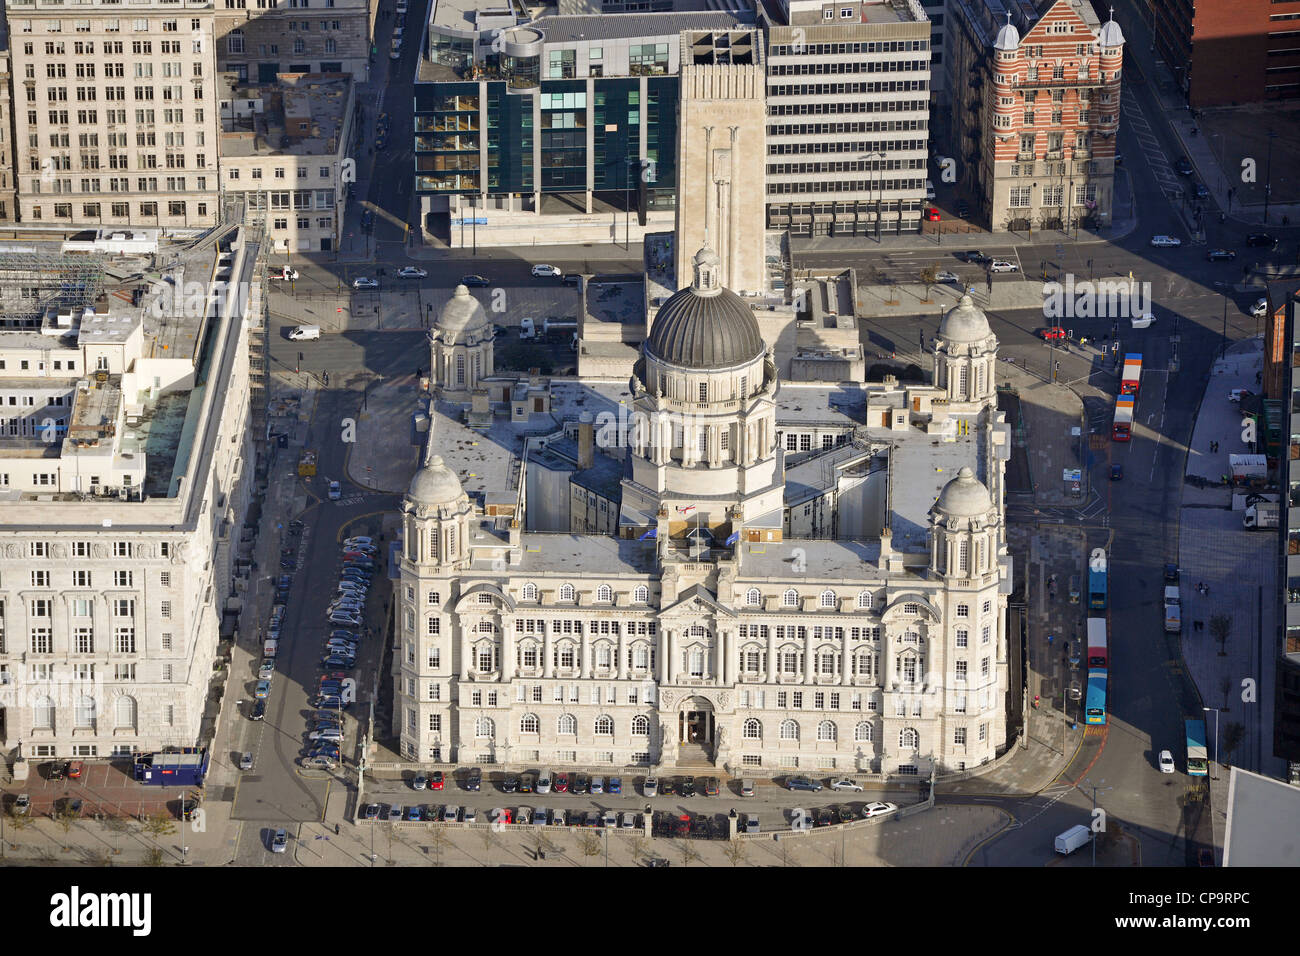 Aerial Image of the Port of Liverpool Building - Stock Image